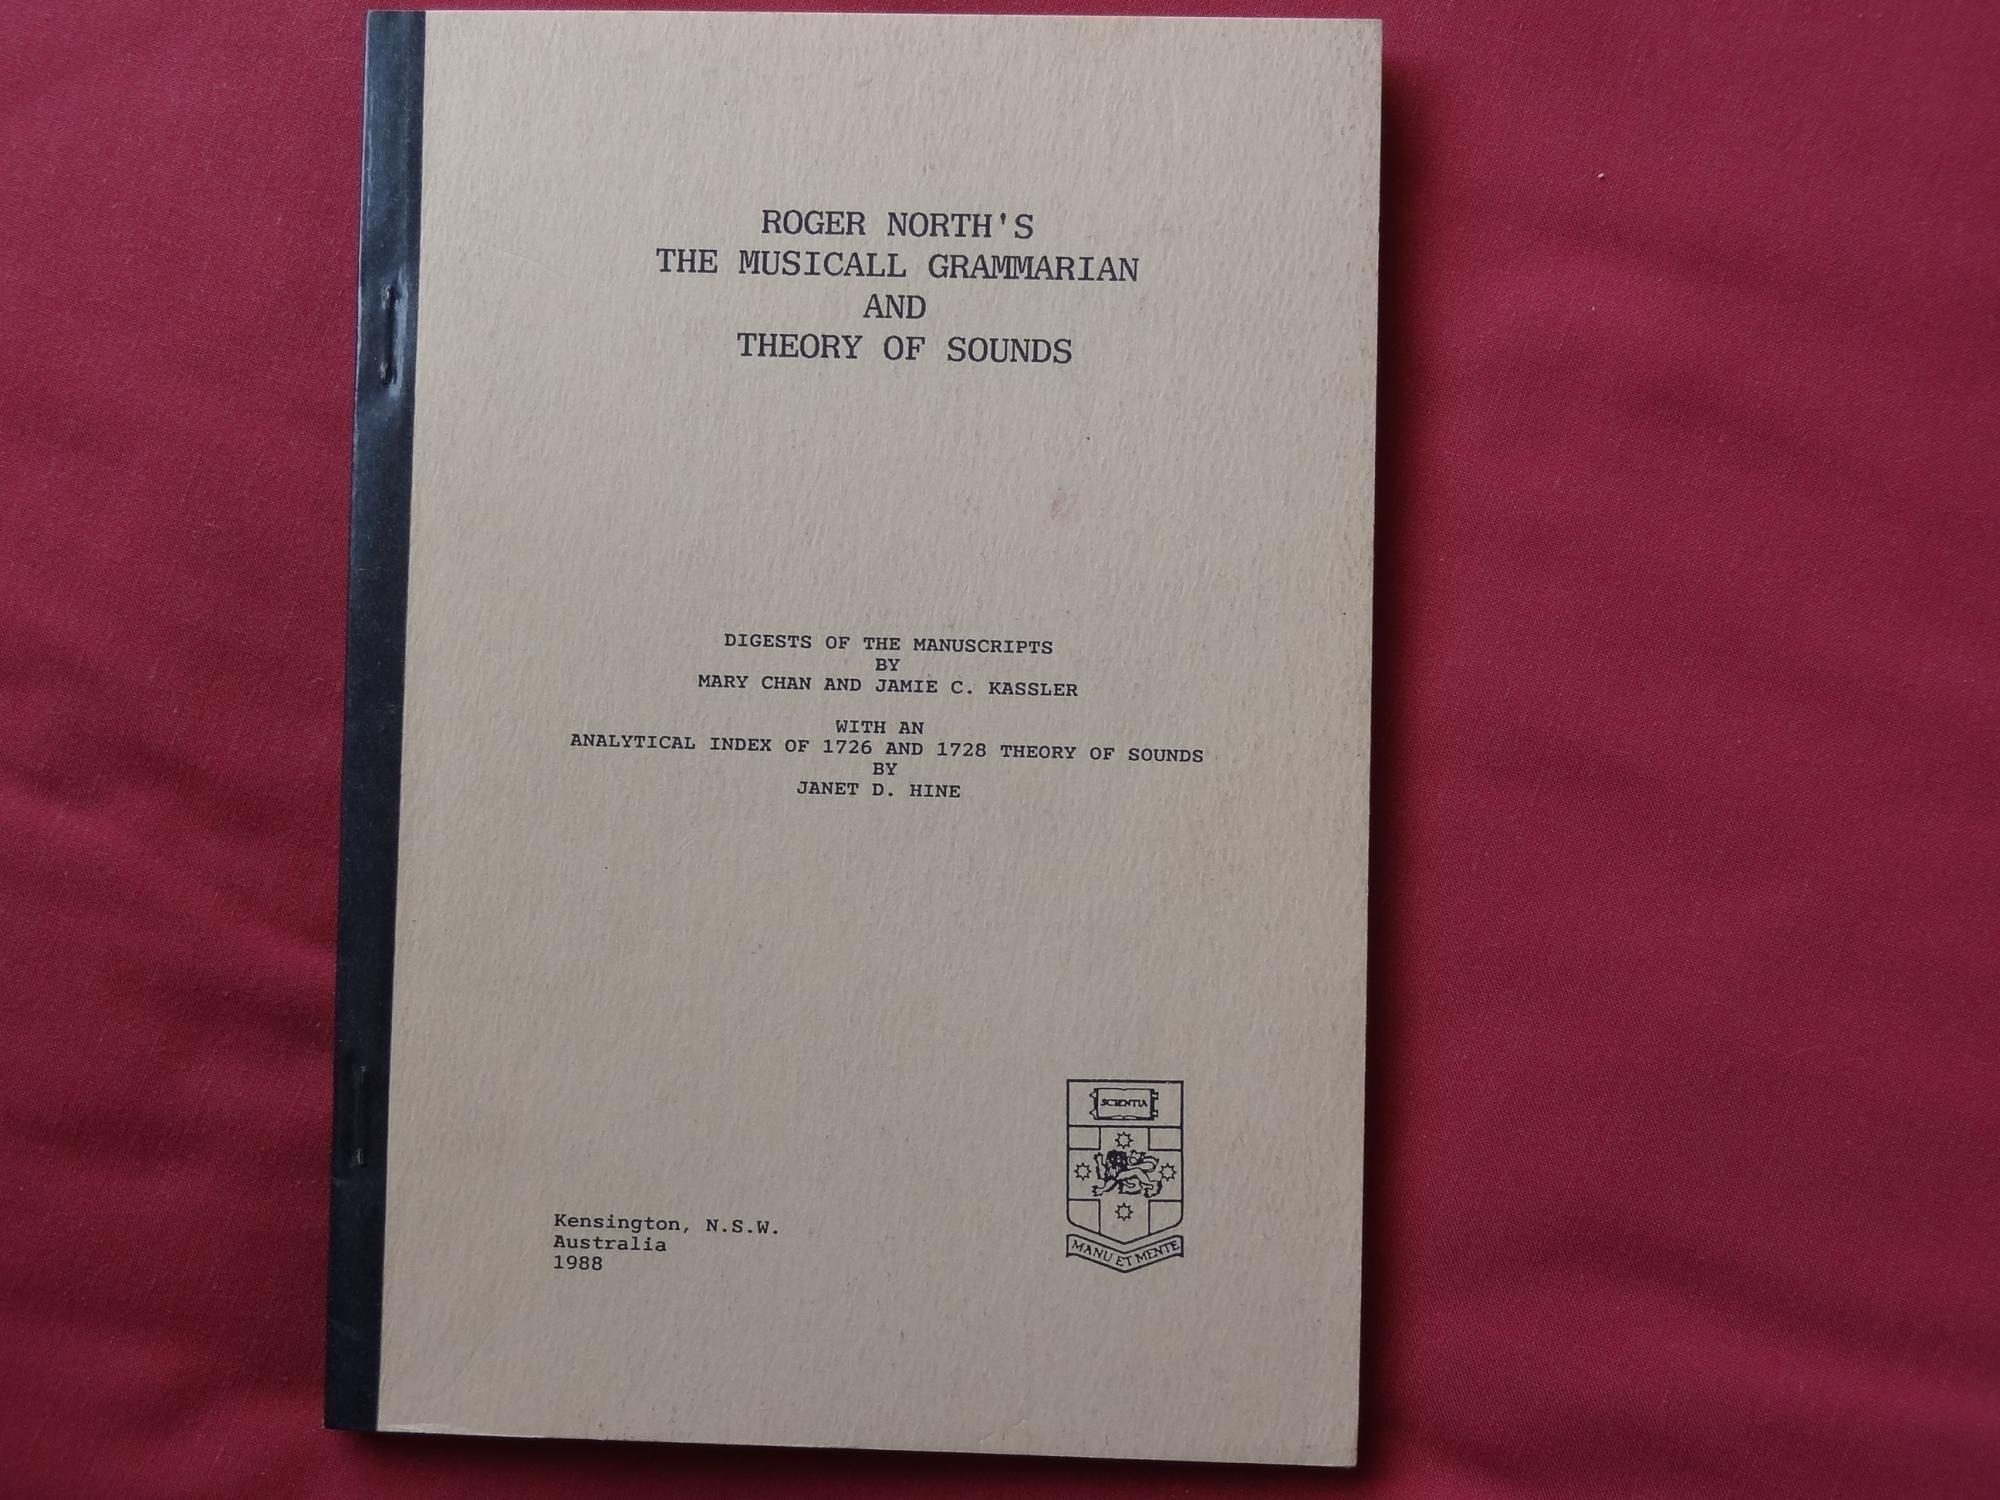 ROGER NORTH'S THE MUSICALL GRAMMARIAN AND THEORY OF SOUNDS Digests of the Manuscripts with an analytical index of 1726 and 1728 Theory of Sounds NORT